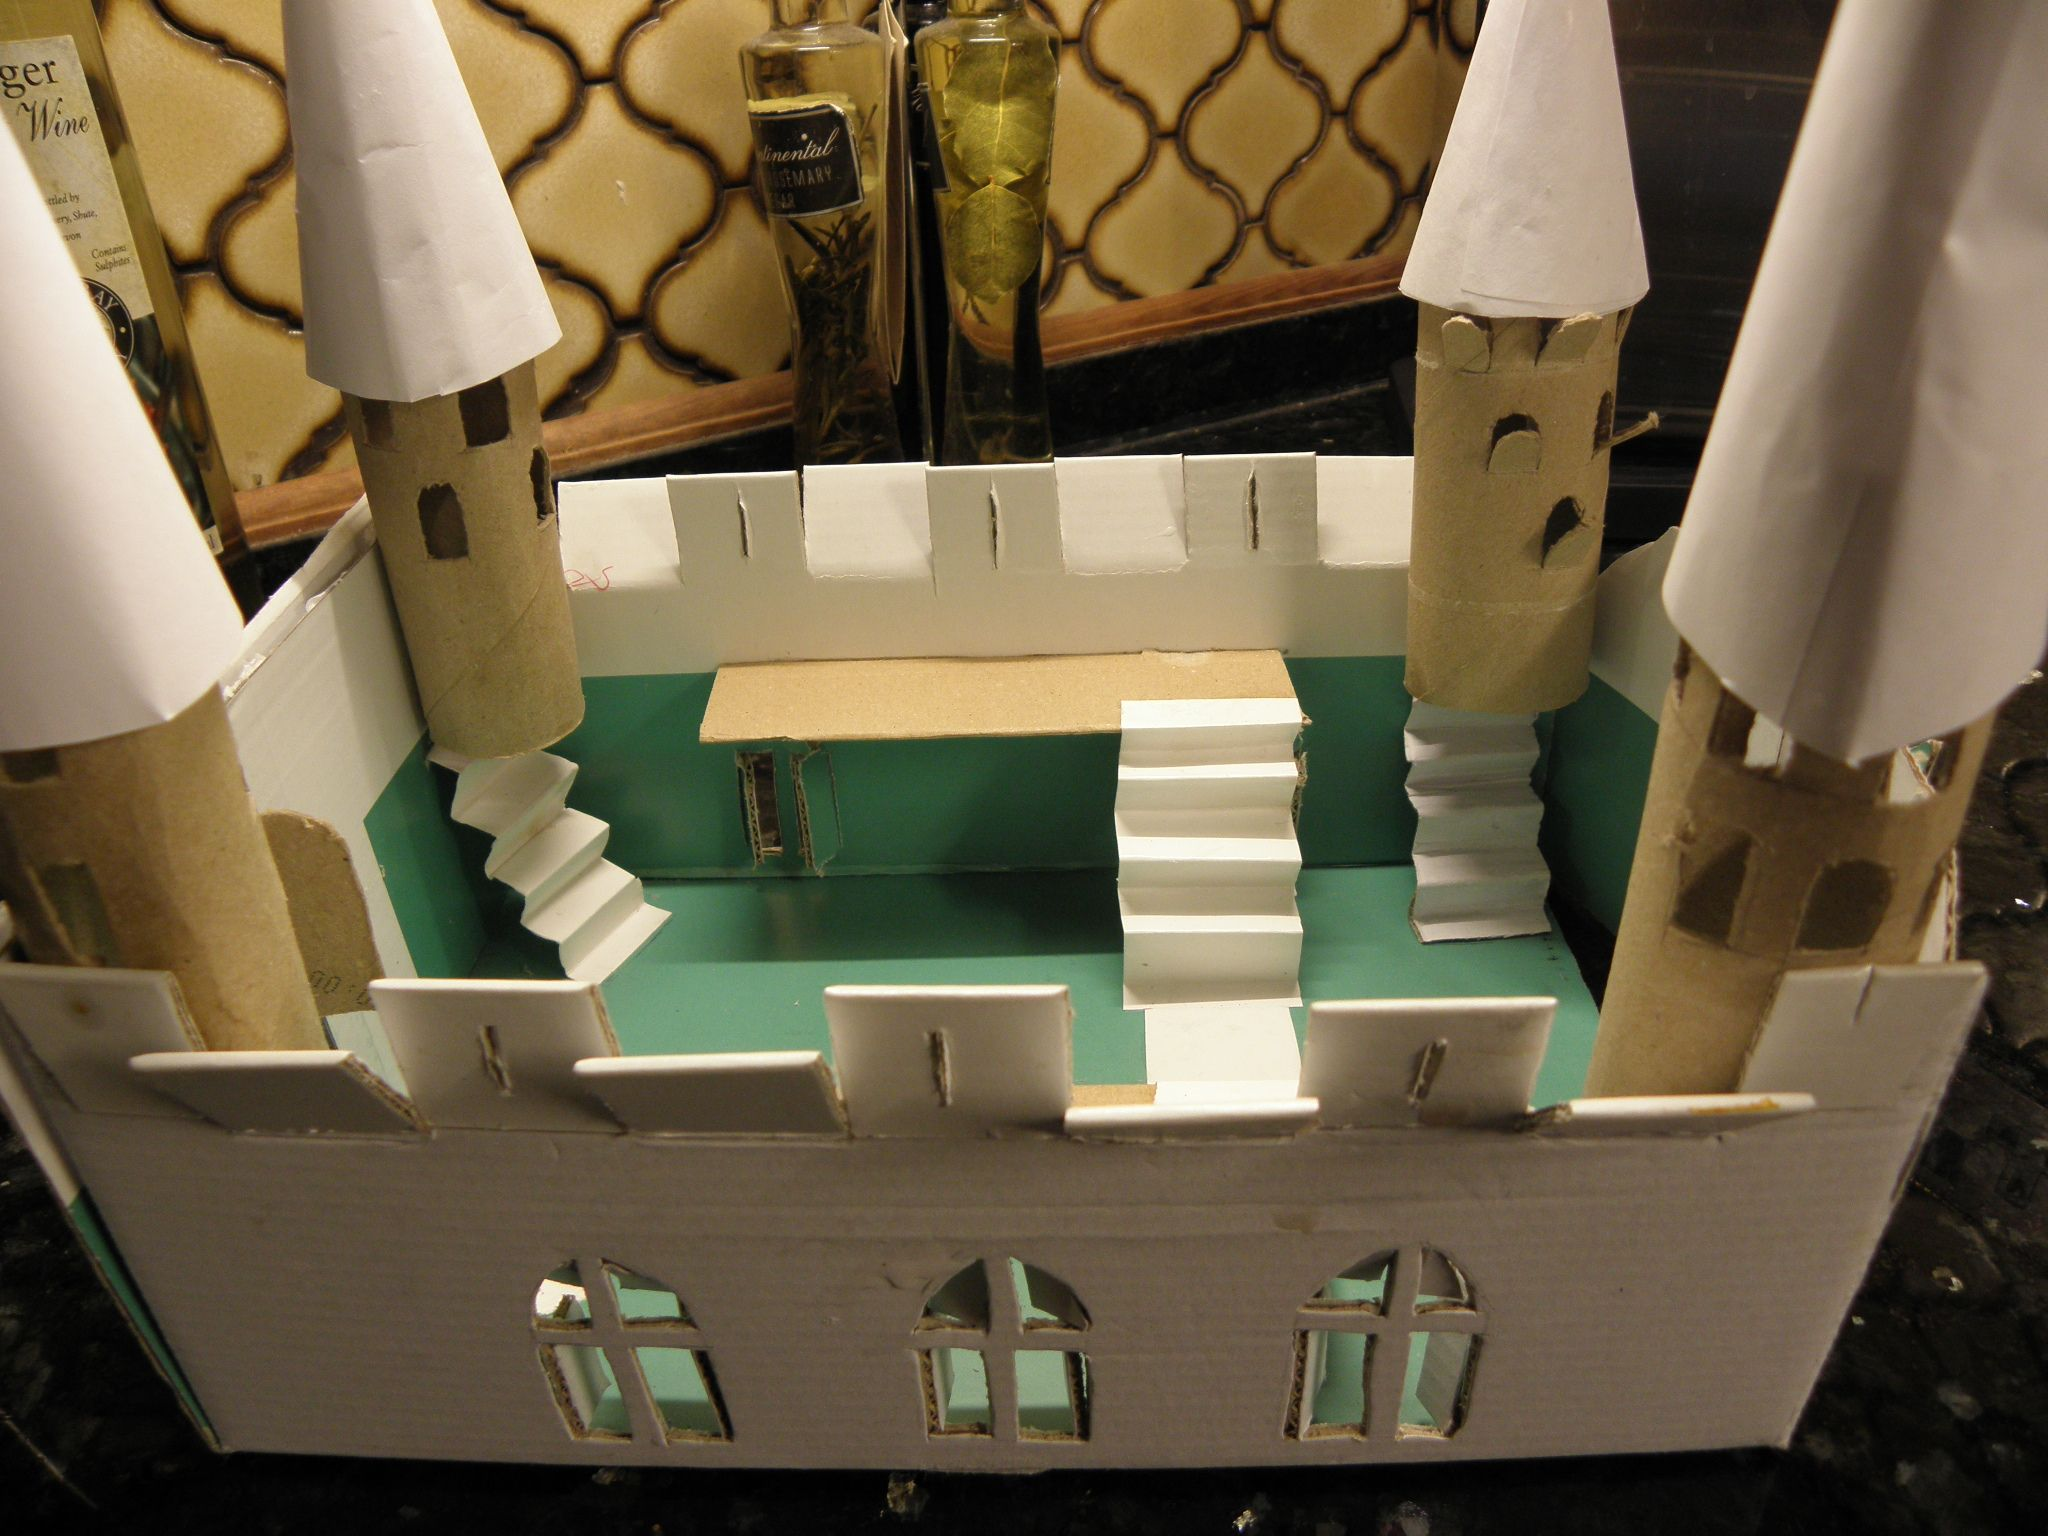 Shoe Box Dollhouse Craft For Kids: Medieval Castle, School Homework. Made Of Toilet Rolls